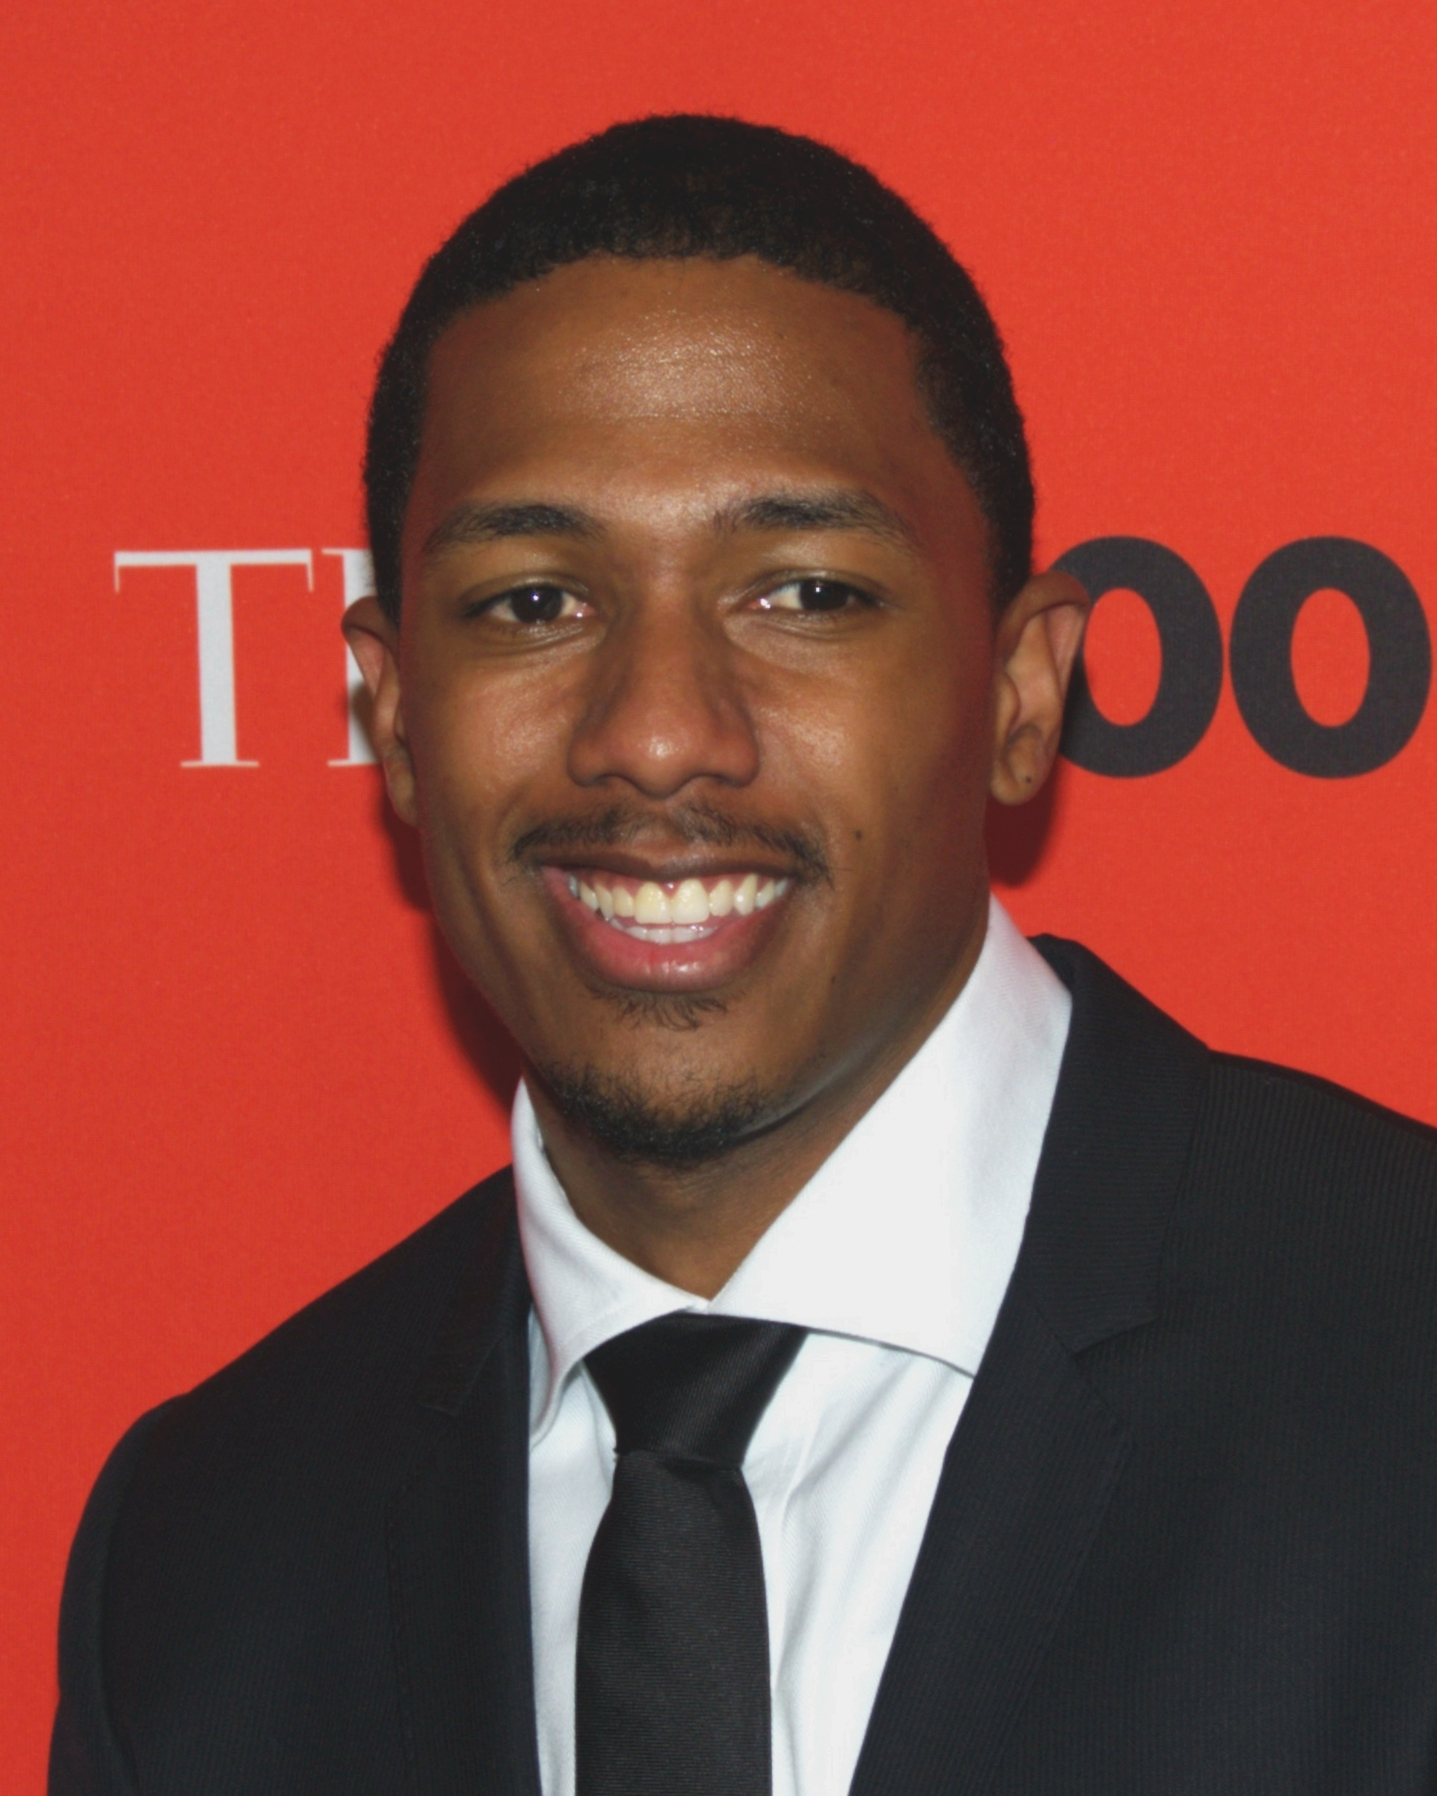 Description Nick Cannon by David Shankbone.jpg